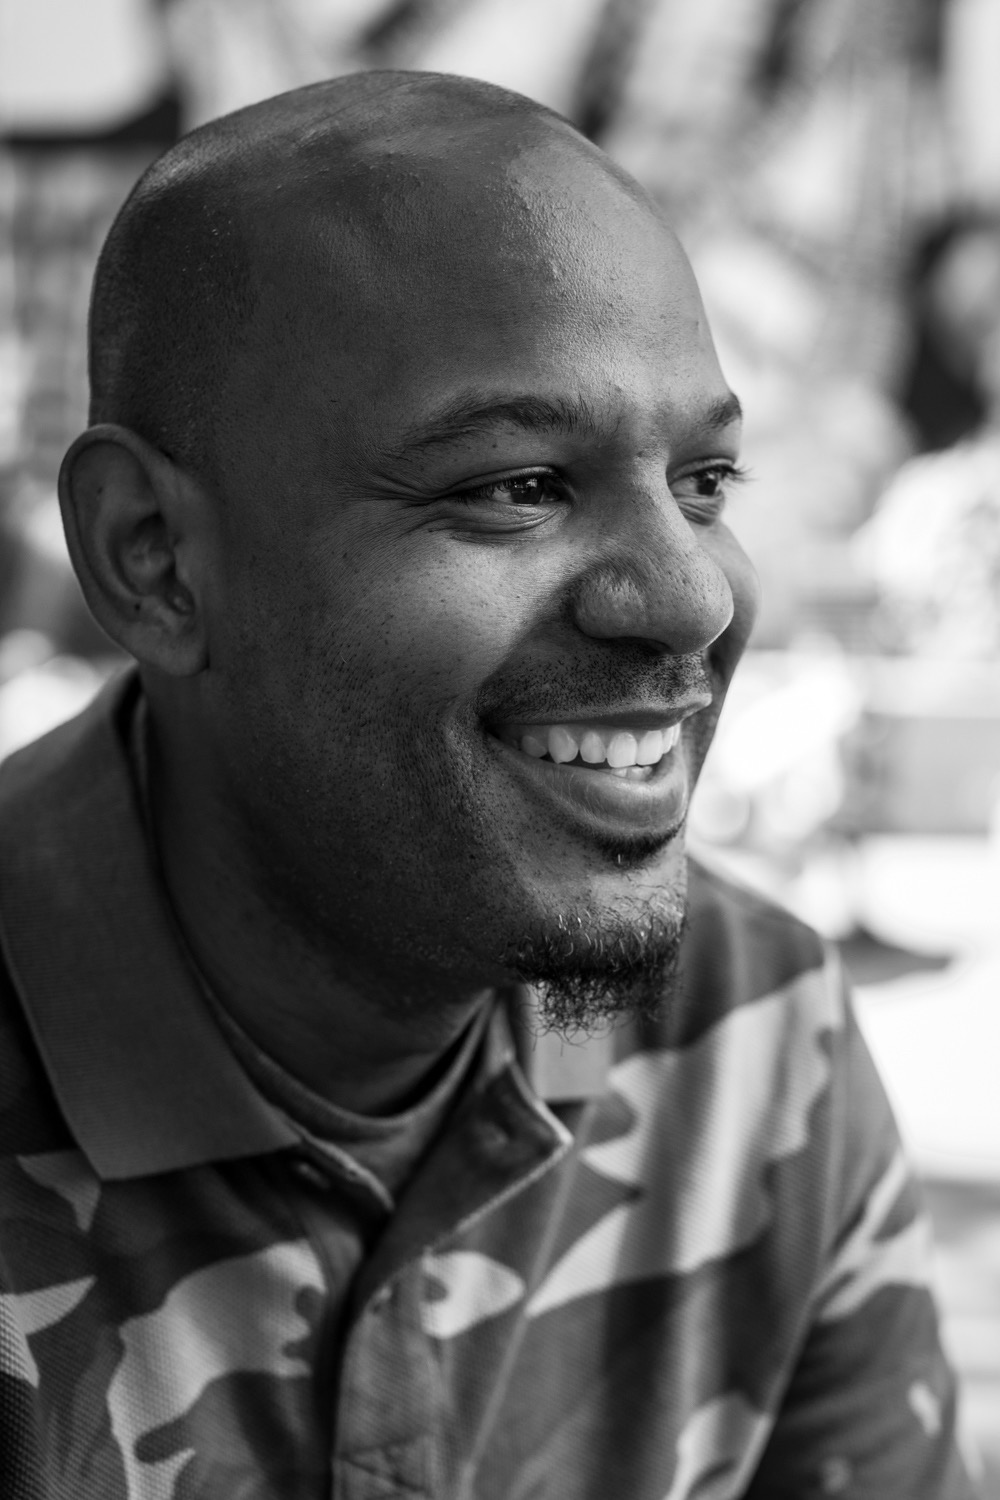 Anthony Demby | Humbleriot Anthony Demby is the Founder of the Cultural Consultancy Humbleriot. He is story teller and plays in the spaces of music curation, cultural programming, & social impact and thrives on creating transformative experiences and narratives that resonate with the soul.